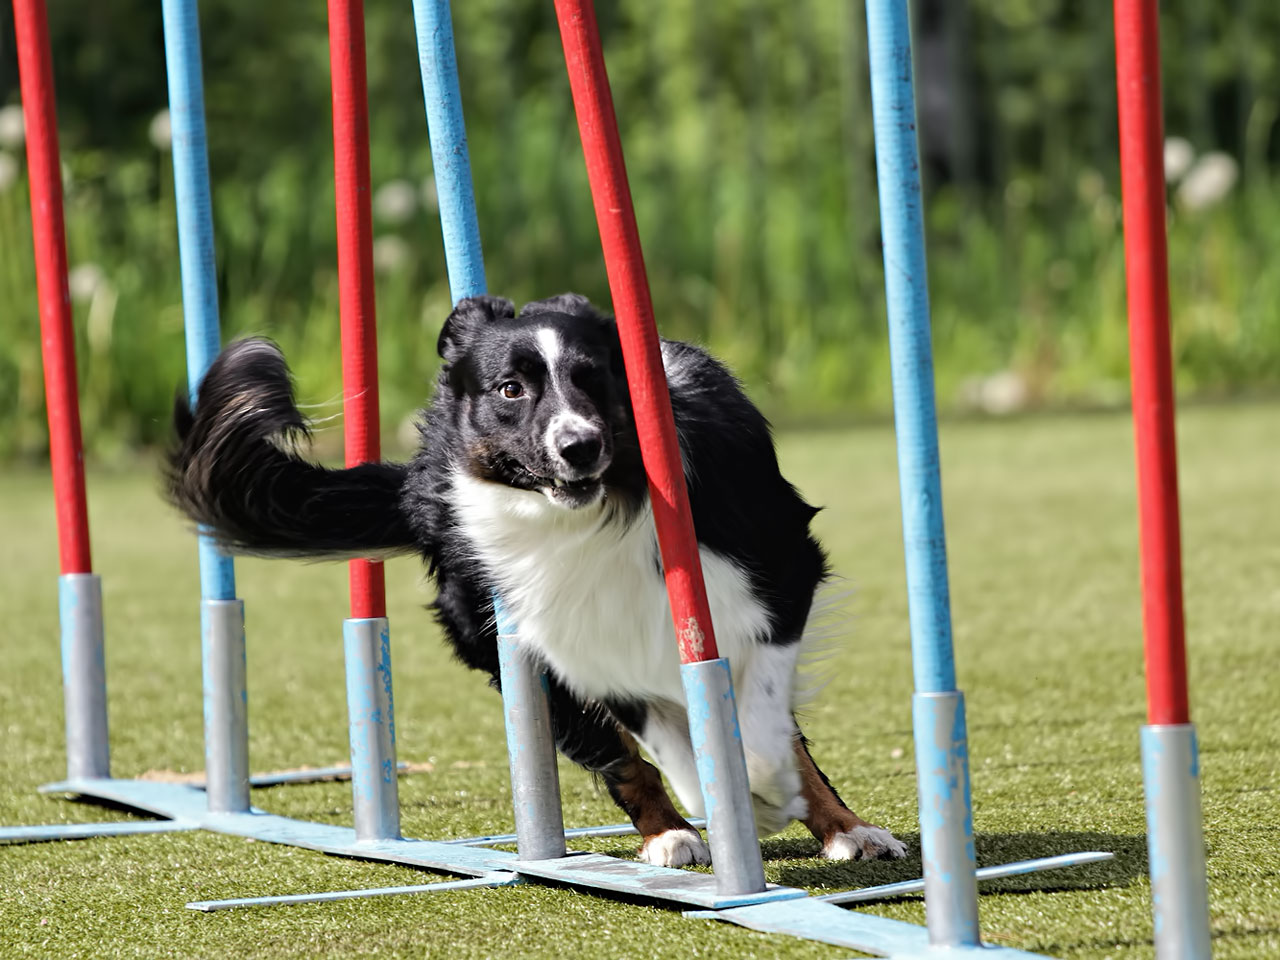 Border <a href='https://www.tieranzeigen.at/hunde/collie/' title='Rasseportrait: Collie' class='link_xl'>Collie</a> absolviert Agility Parcour